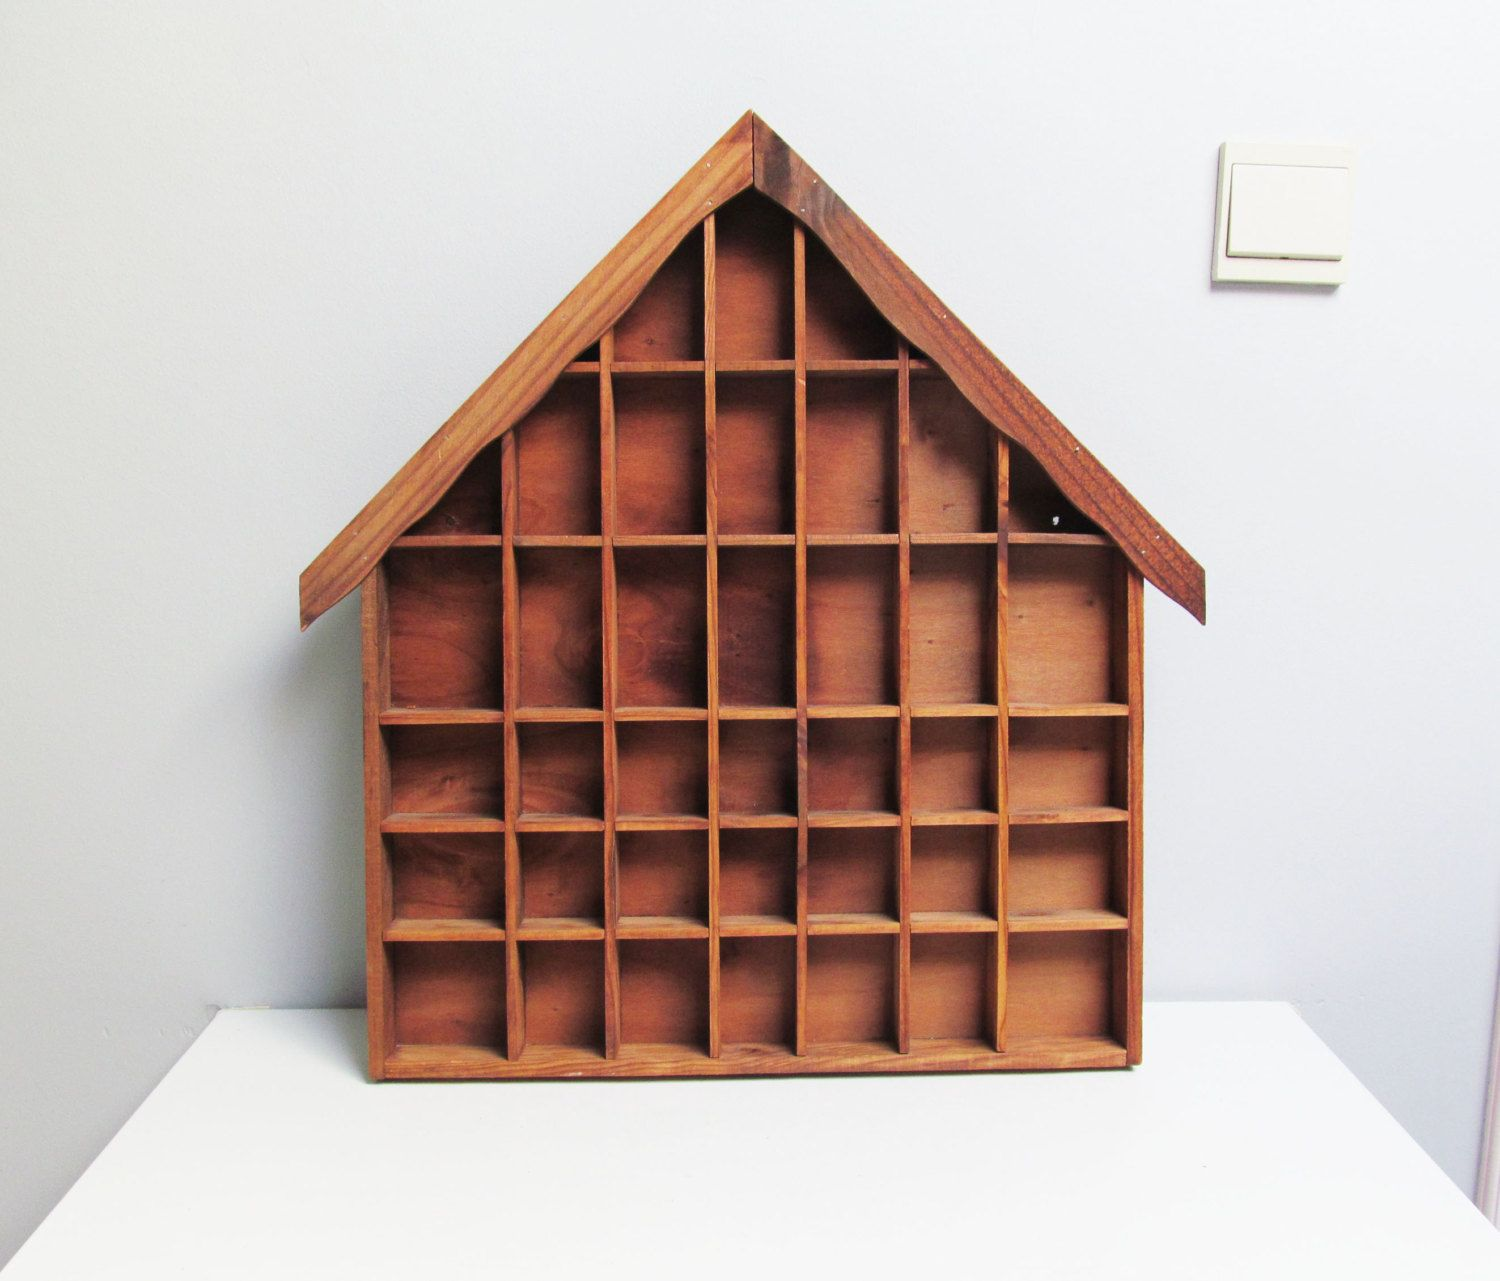 Tall Wood Display Case Shadow Box Miniature Display Case House Shaped Shelf Treasure Display Printers Drawer Kids Room Decor H 21 2 In